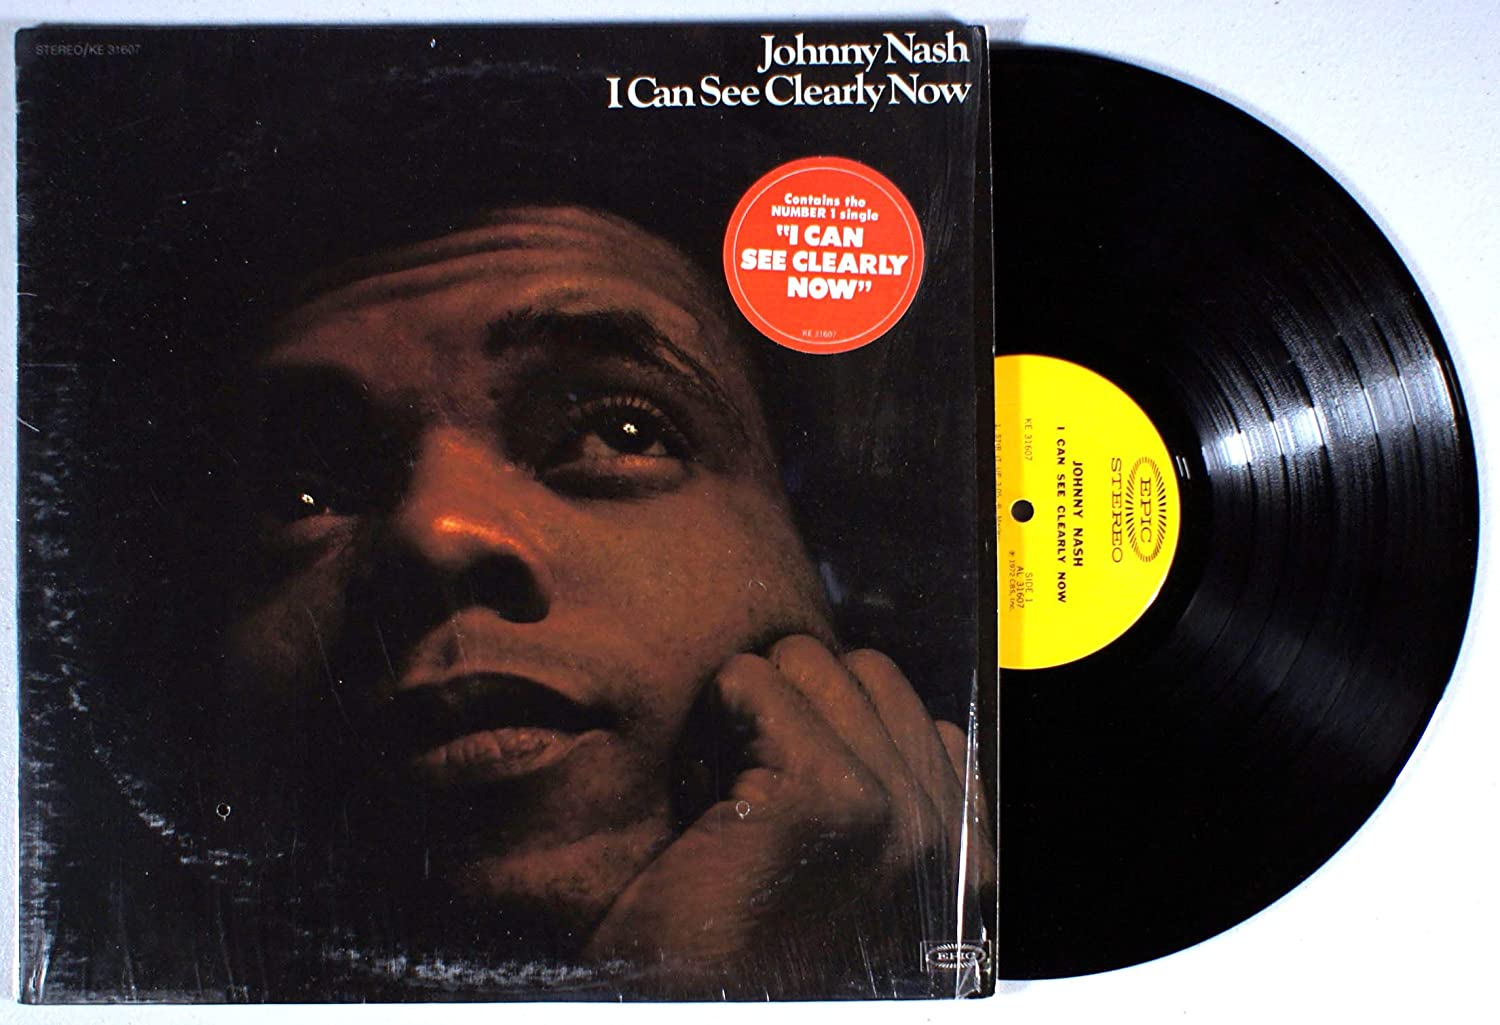 Johnny Nash Johnny Nash I Can See Clearly Now Vinyl Record Amazon Com Music